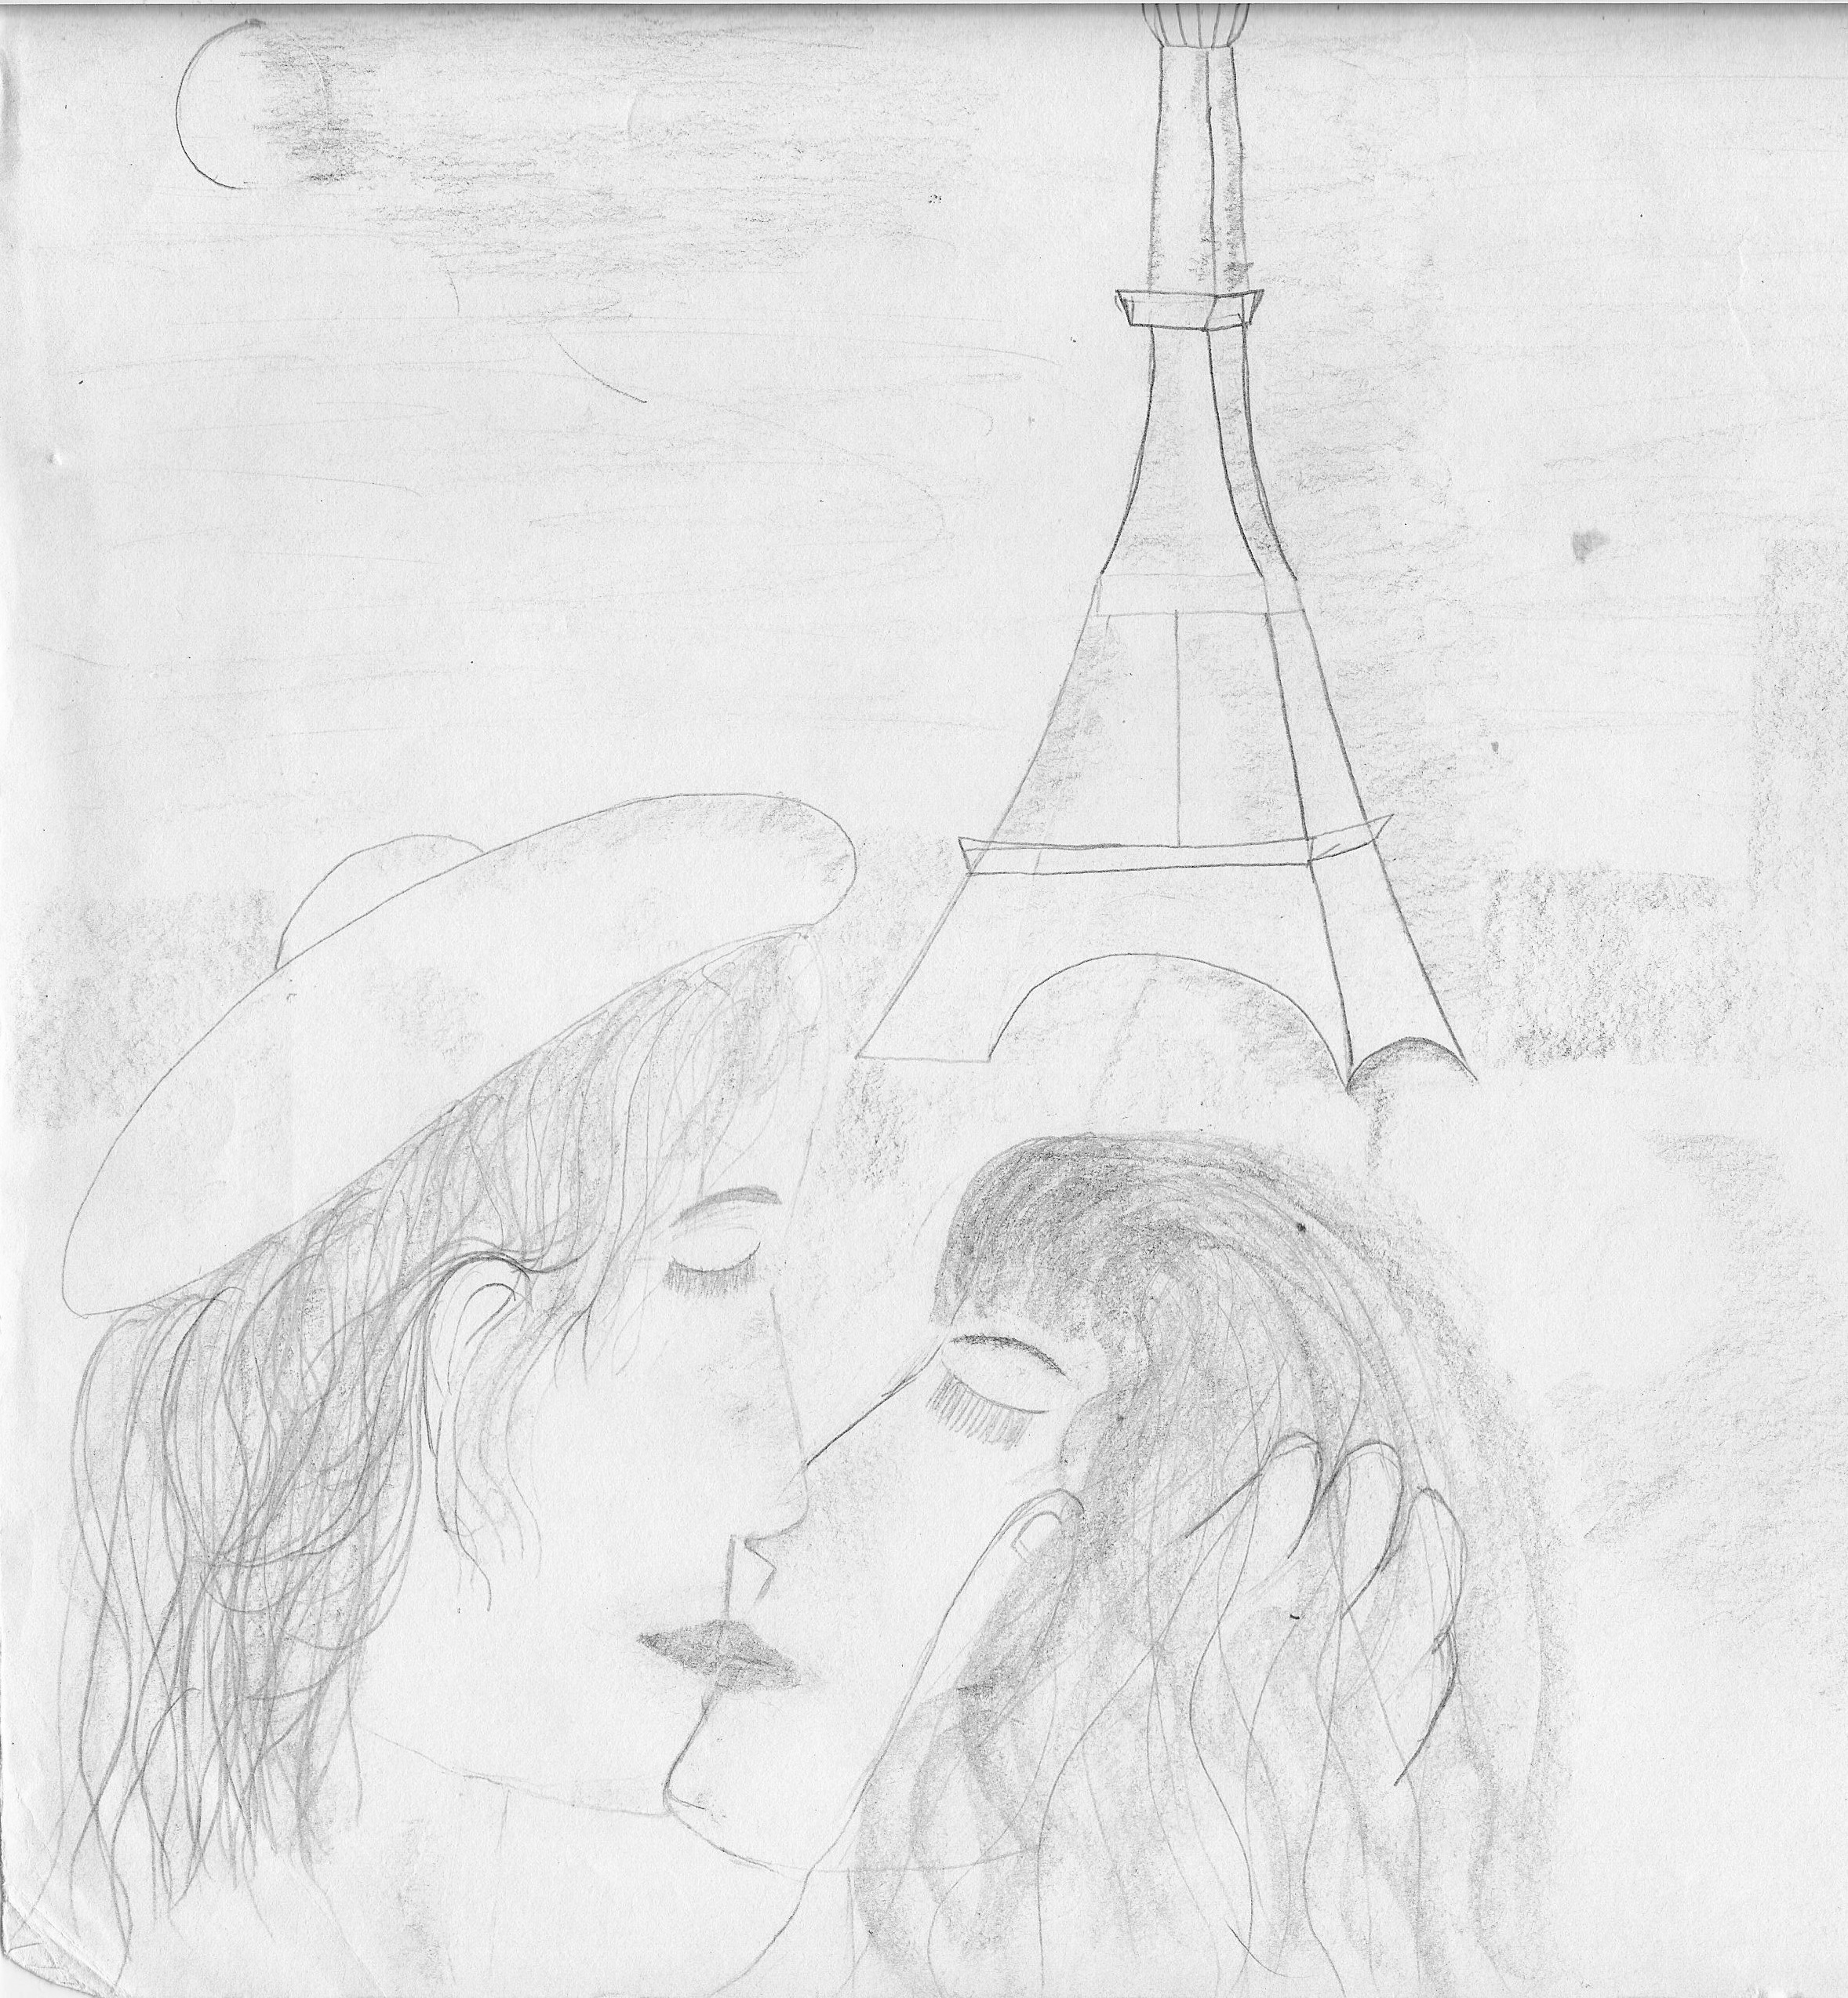 A picture I drew as a child of my French boyfriend fantasy; you can see why writing was a better artistic pursuit for me than sketch artist.